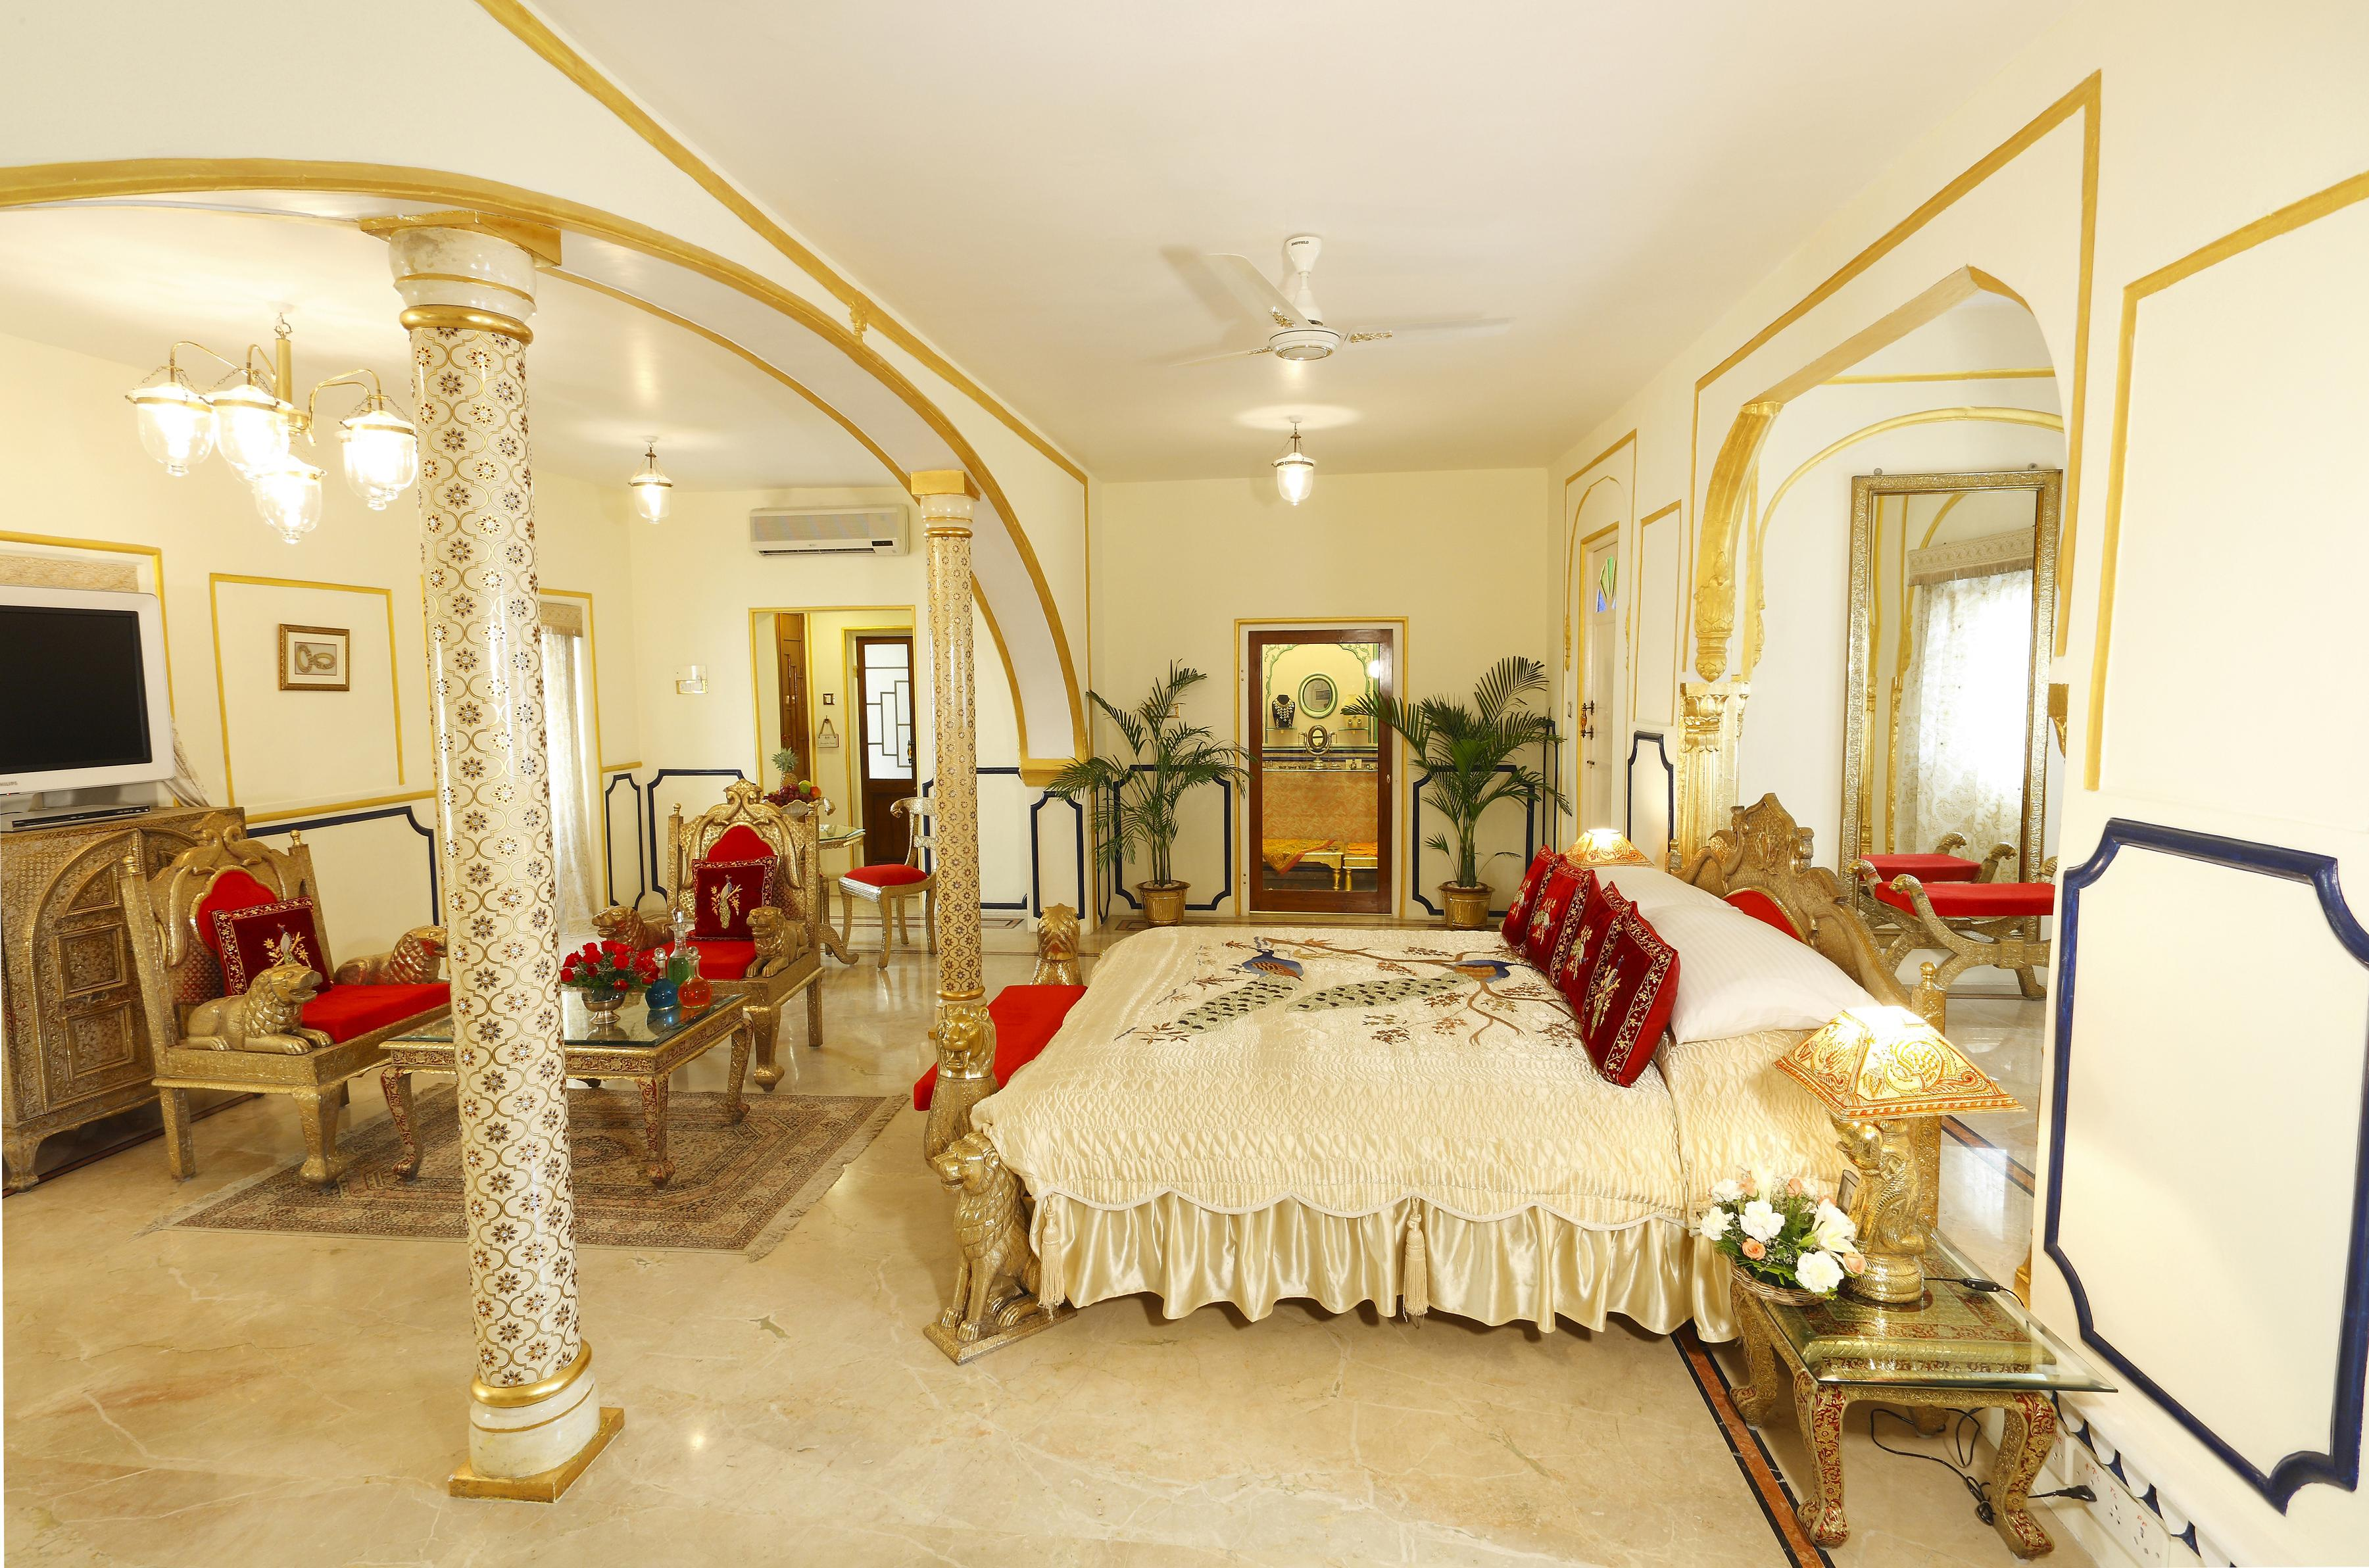 The raj palace jaipur hotel luxury city retreat india slh for Expensive hotels